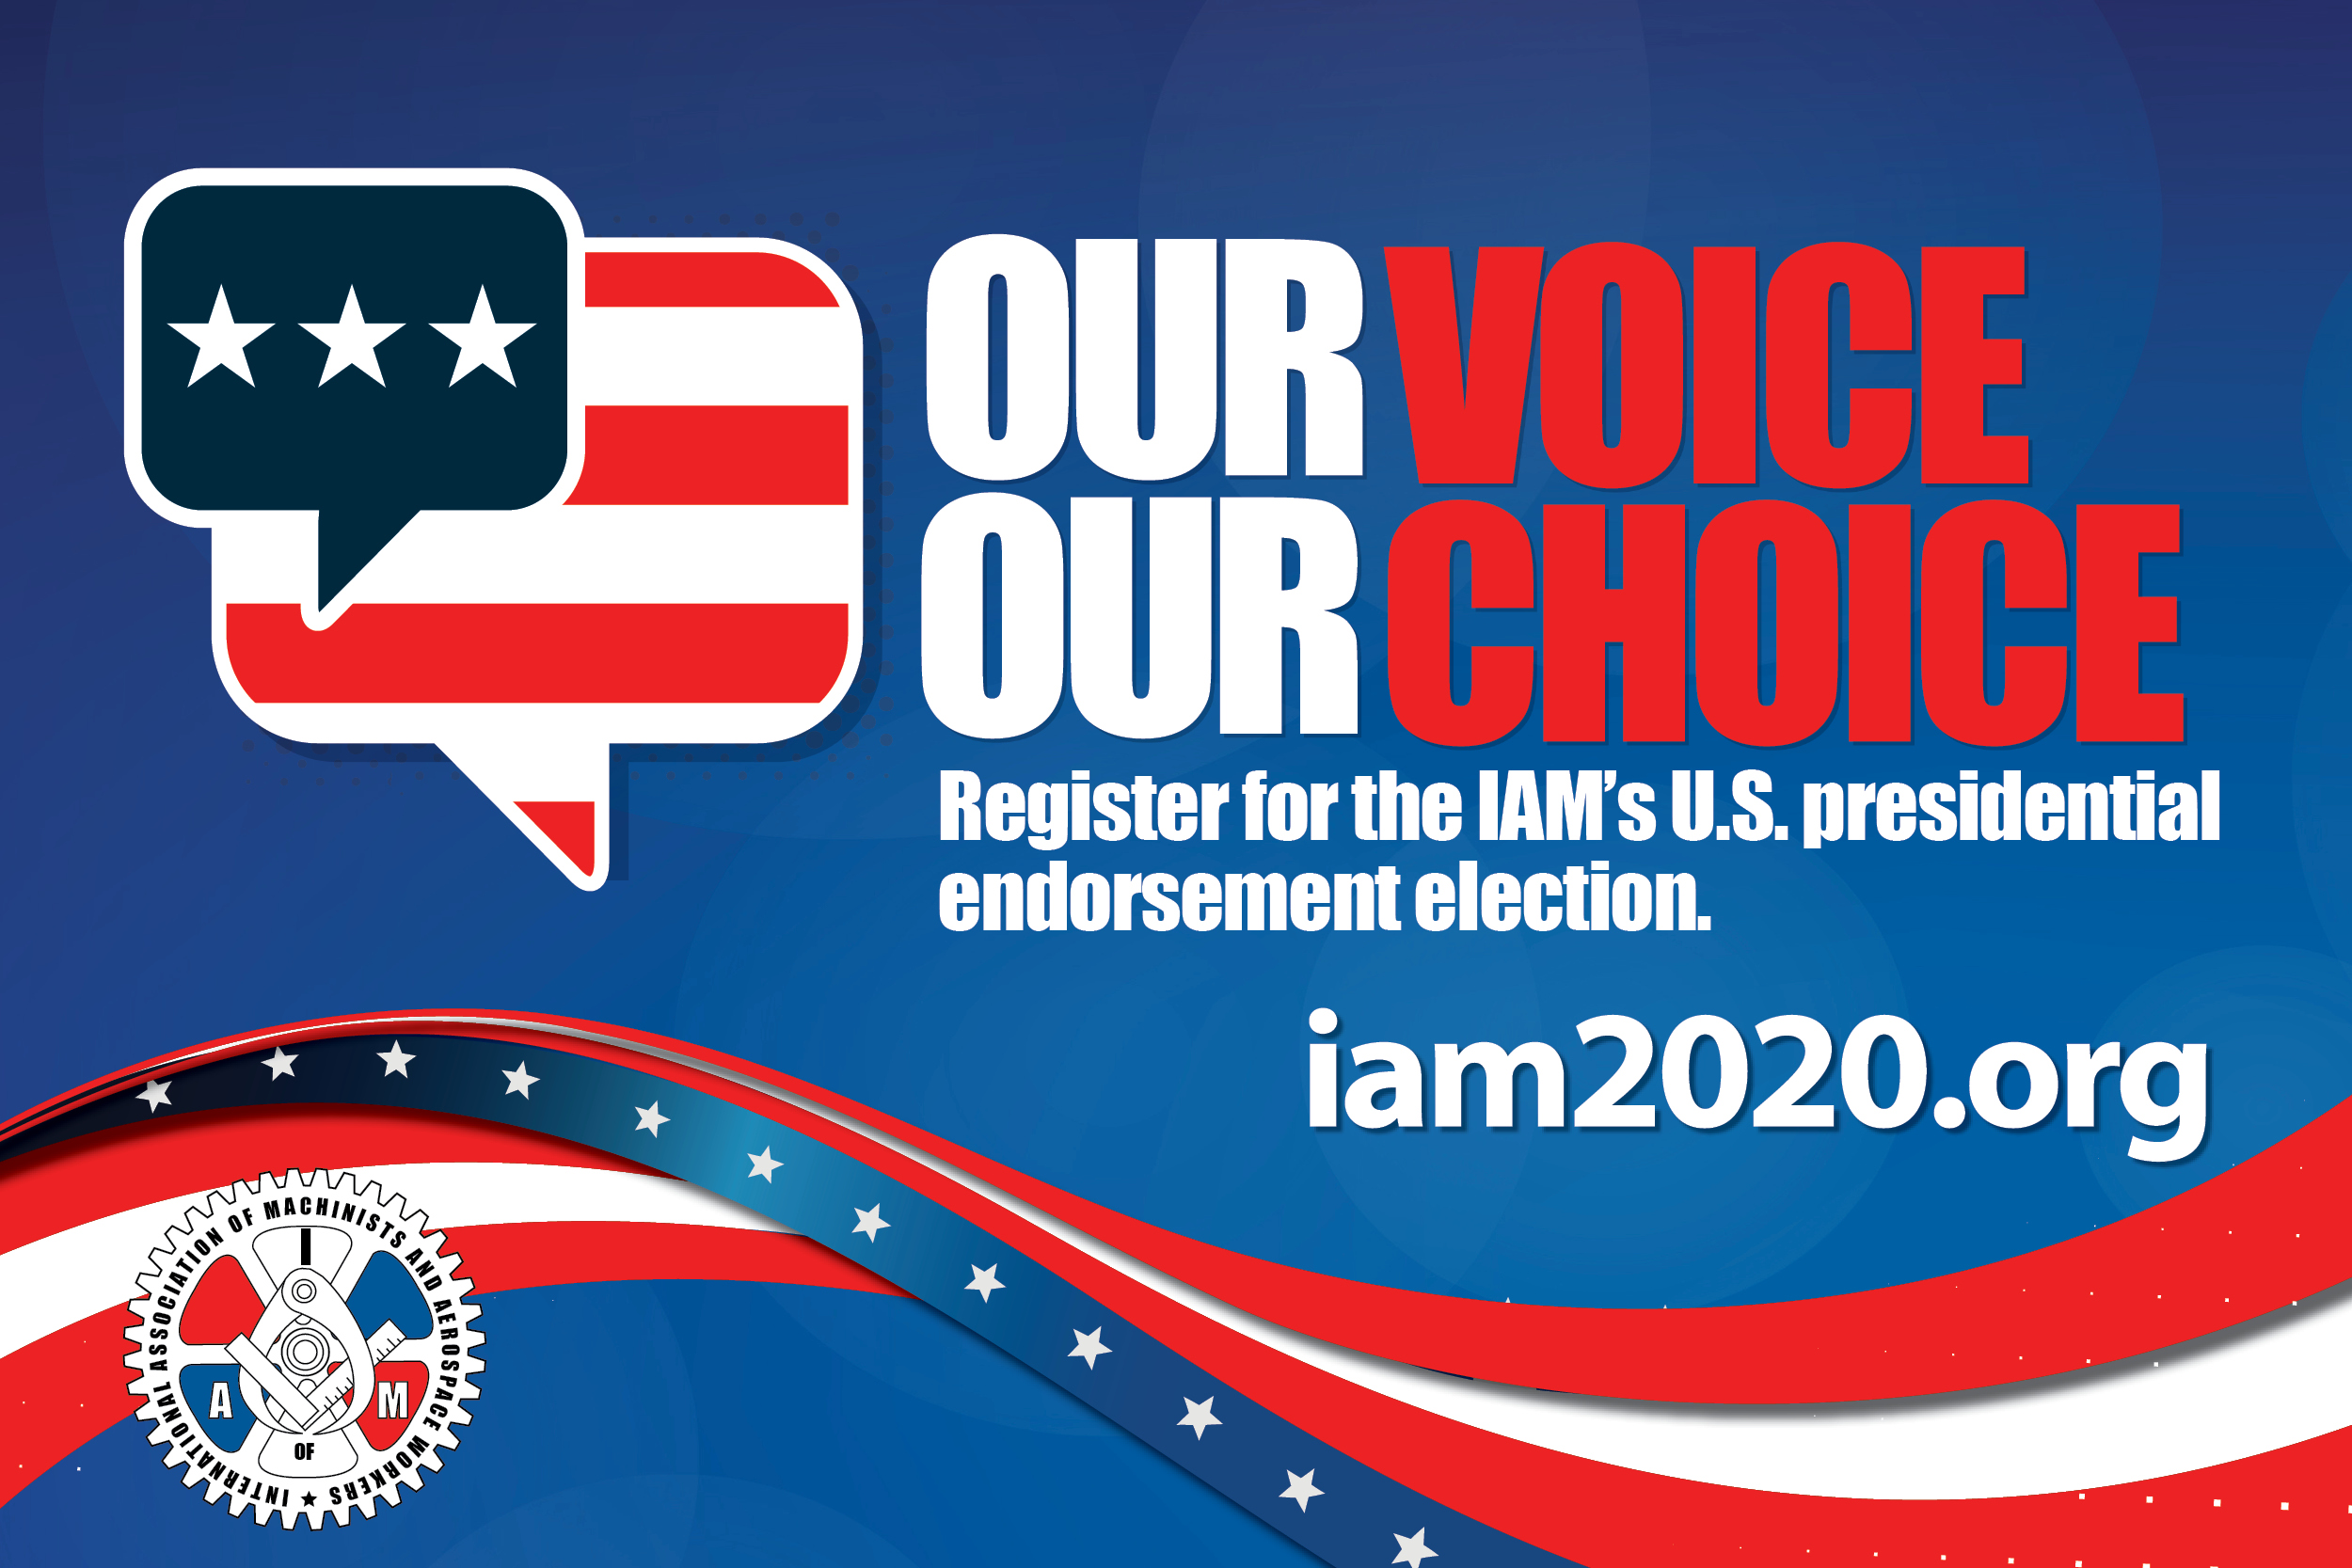 Have You Registered for the IAM's 2020 Presidential Endorsement Election?